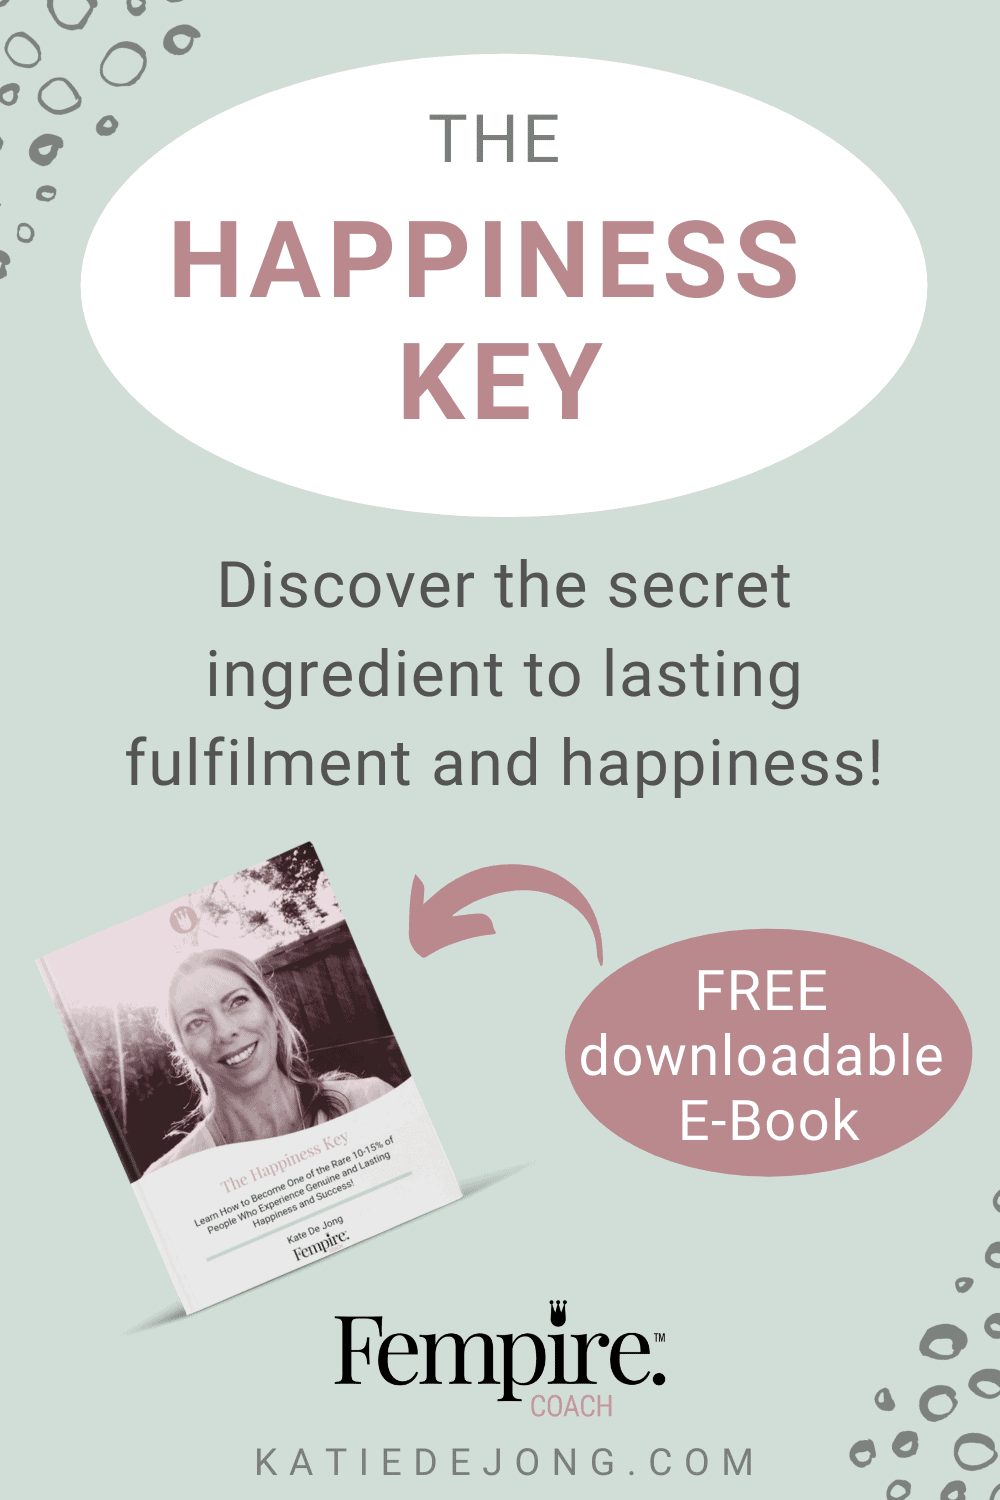 The Happiness Key shares the key ingredient of happiness that only 10-15% have mastered! You'll be guided through a process to get to know yourself at a much deeper level and find greater levels of happiness as a result. #happiness #personalgrowth #personaldevelopment #personalitytests #enneagram #myersbriggs #discprofile